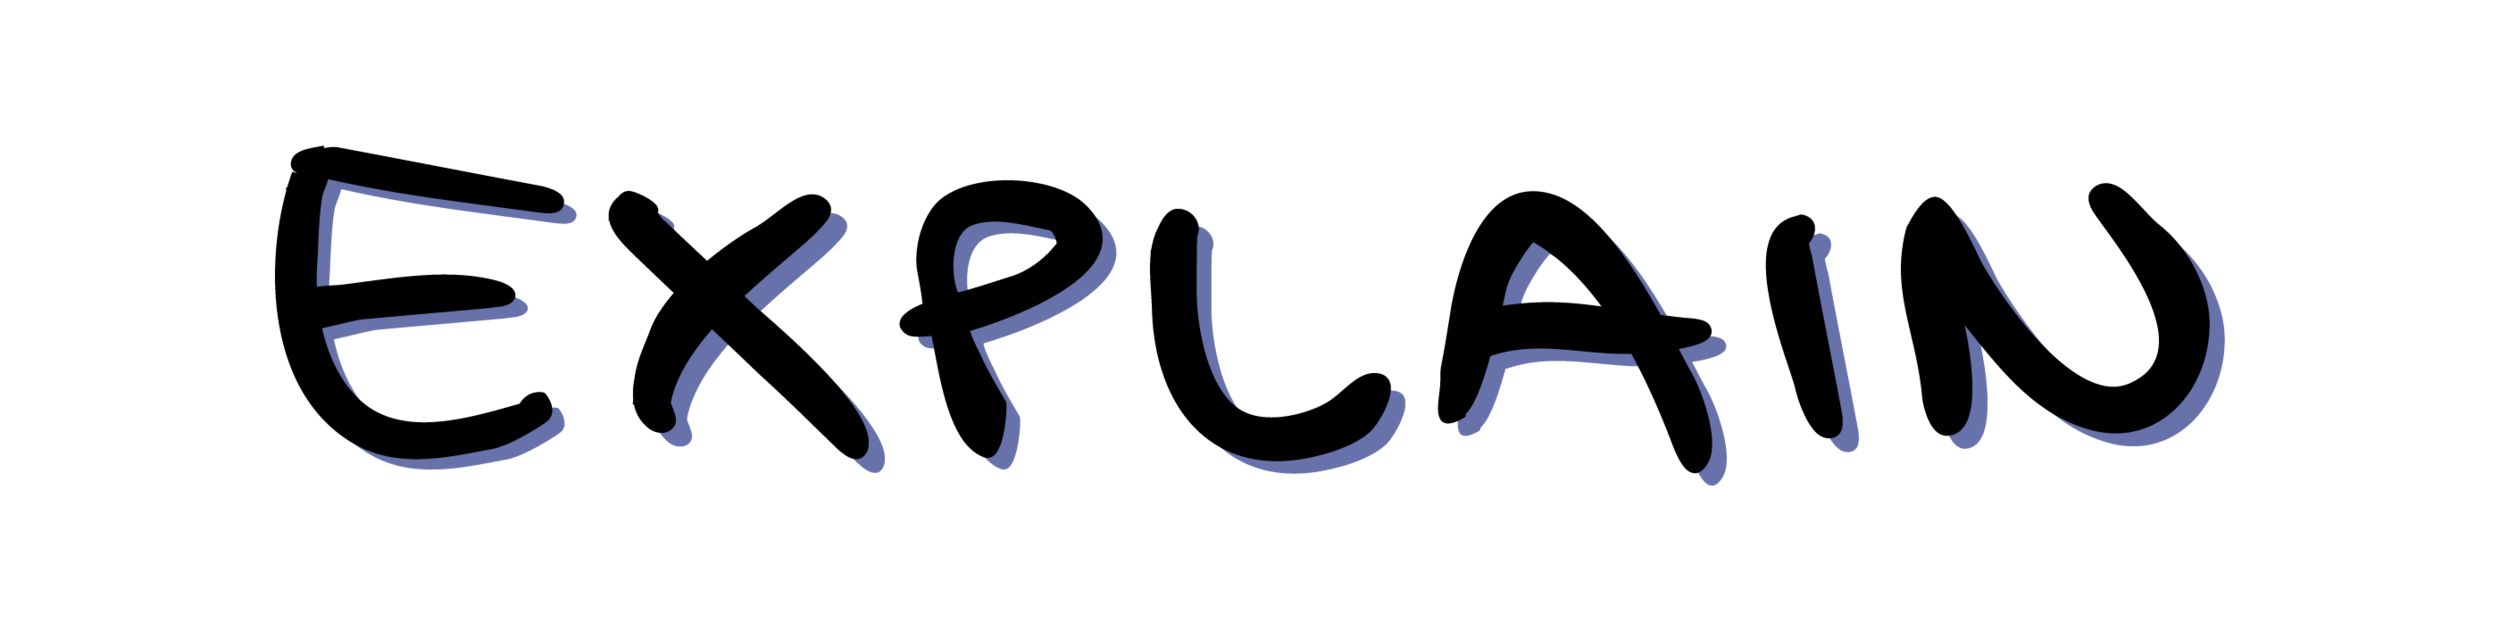 logo_plain_extra space.png